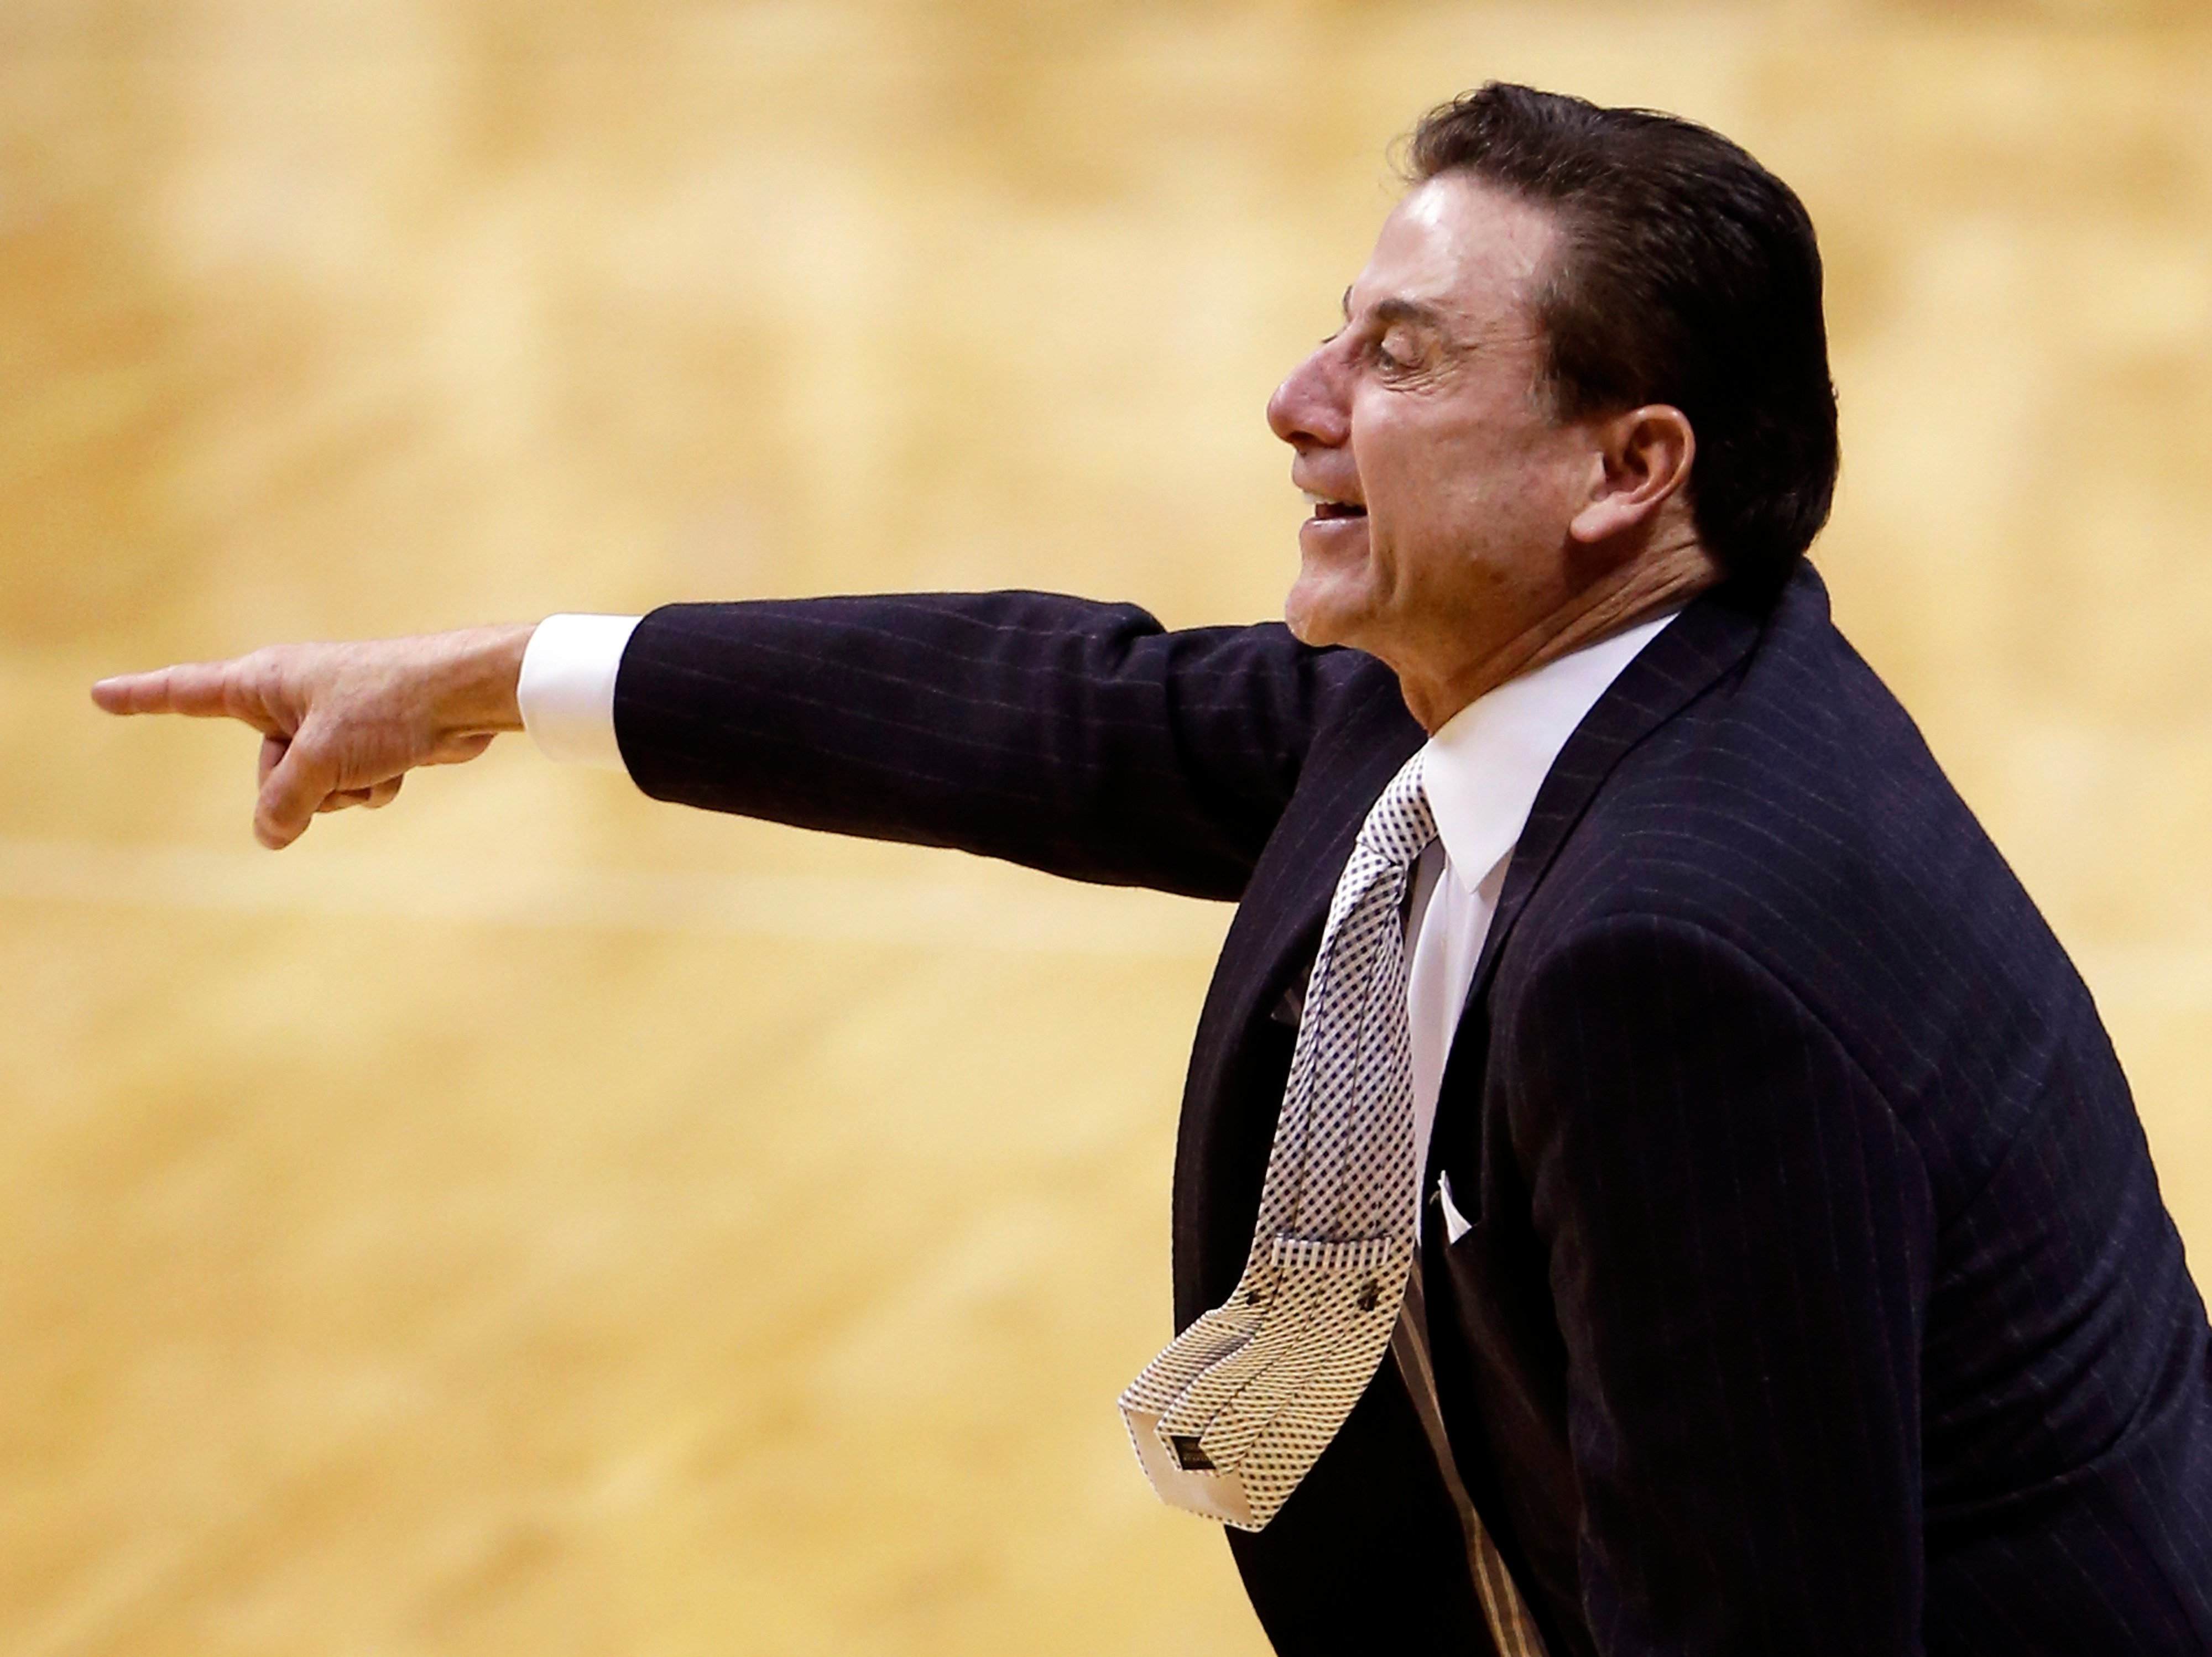 Pitino responds to Calipari's comments